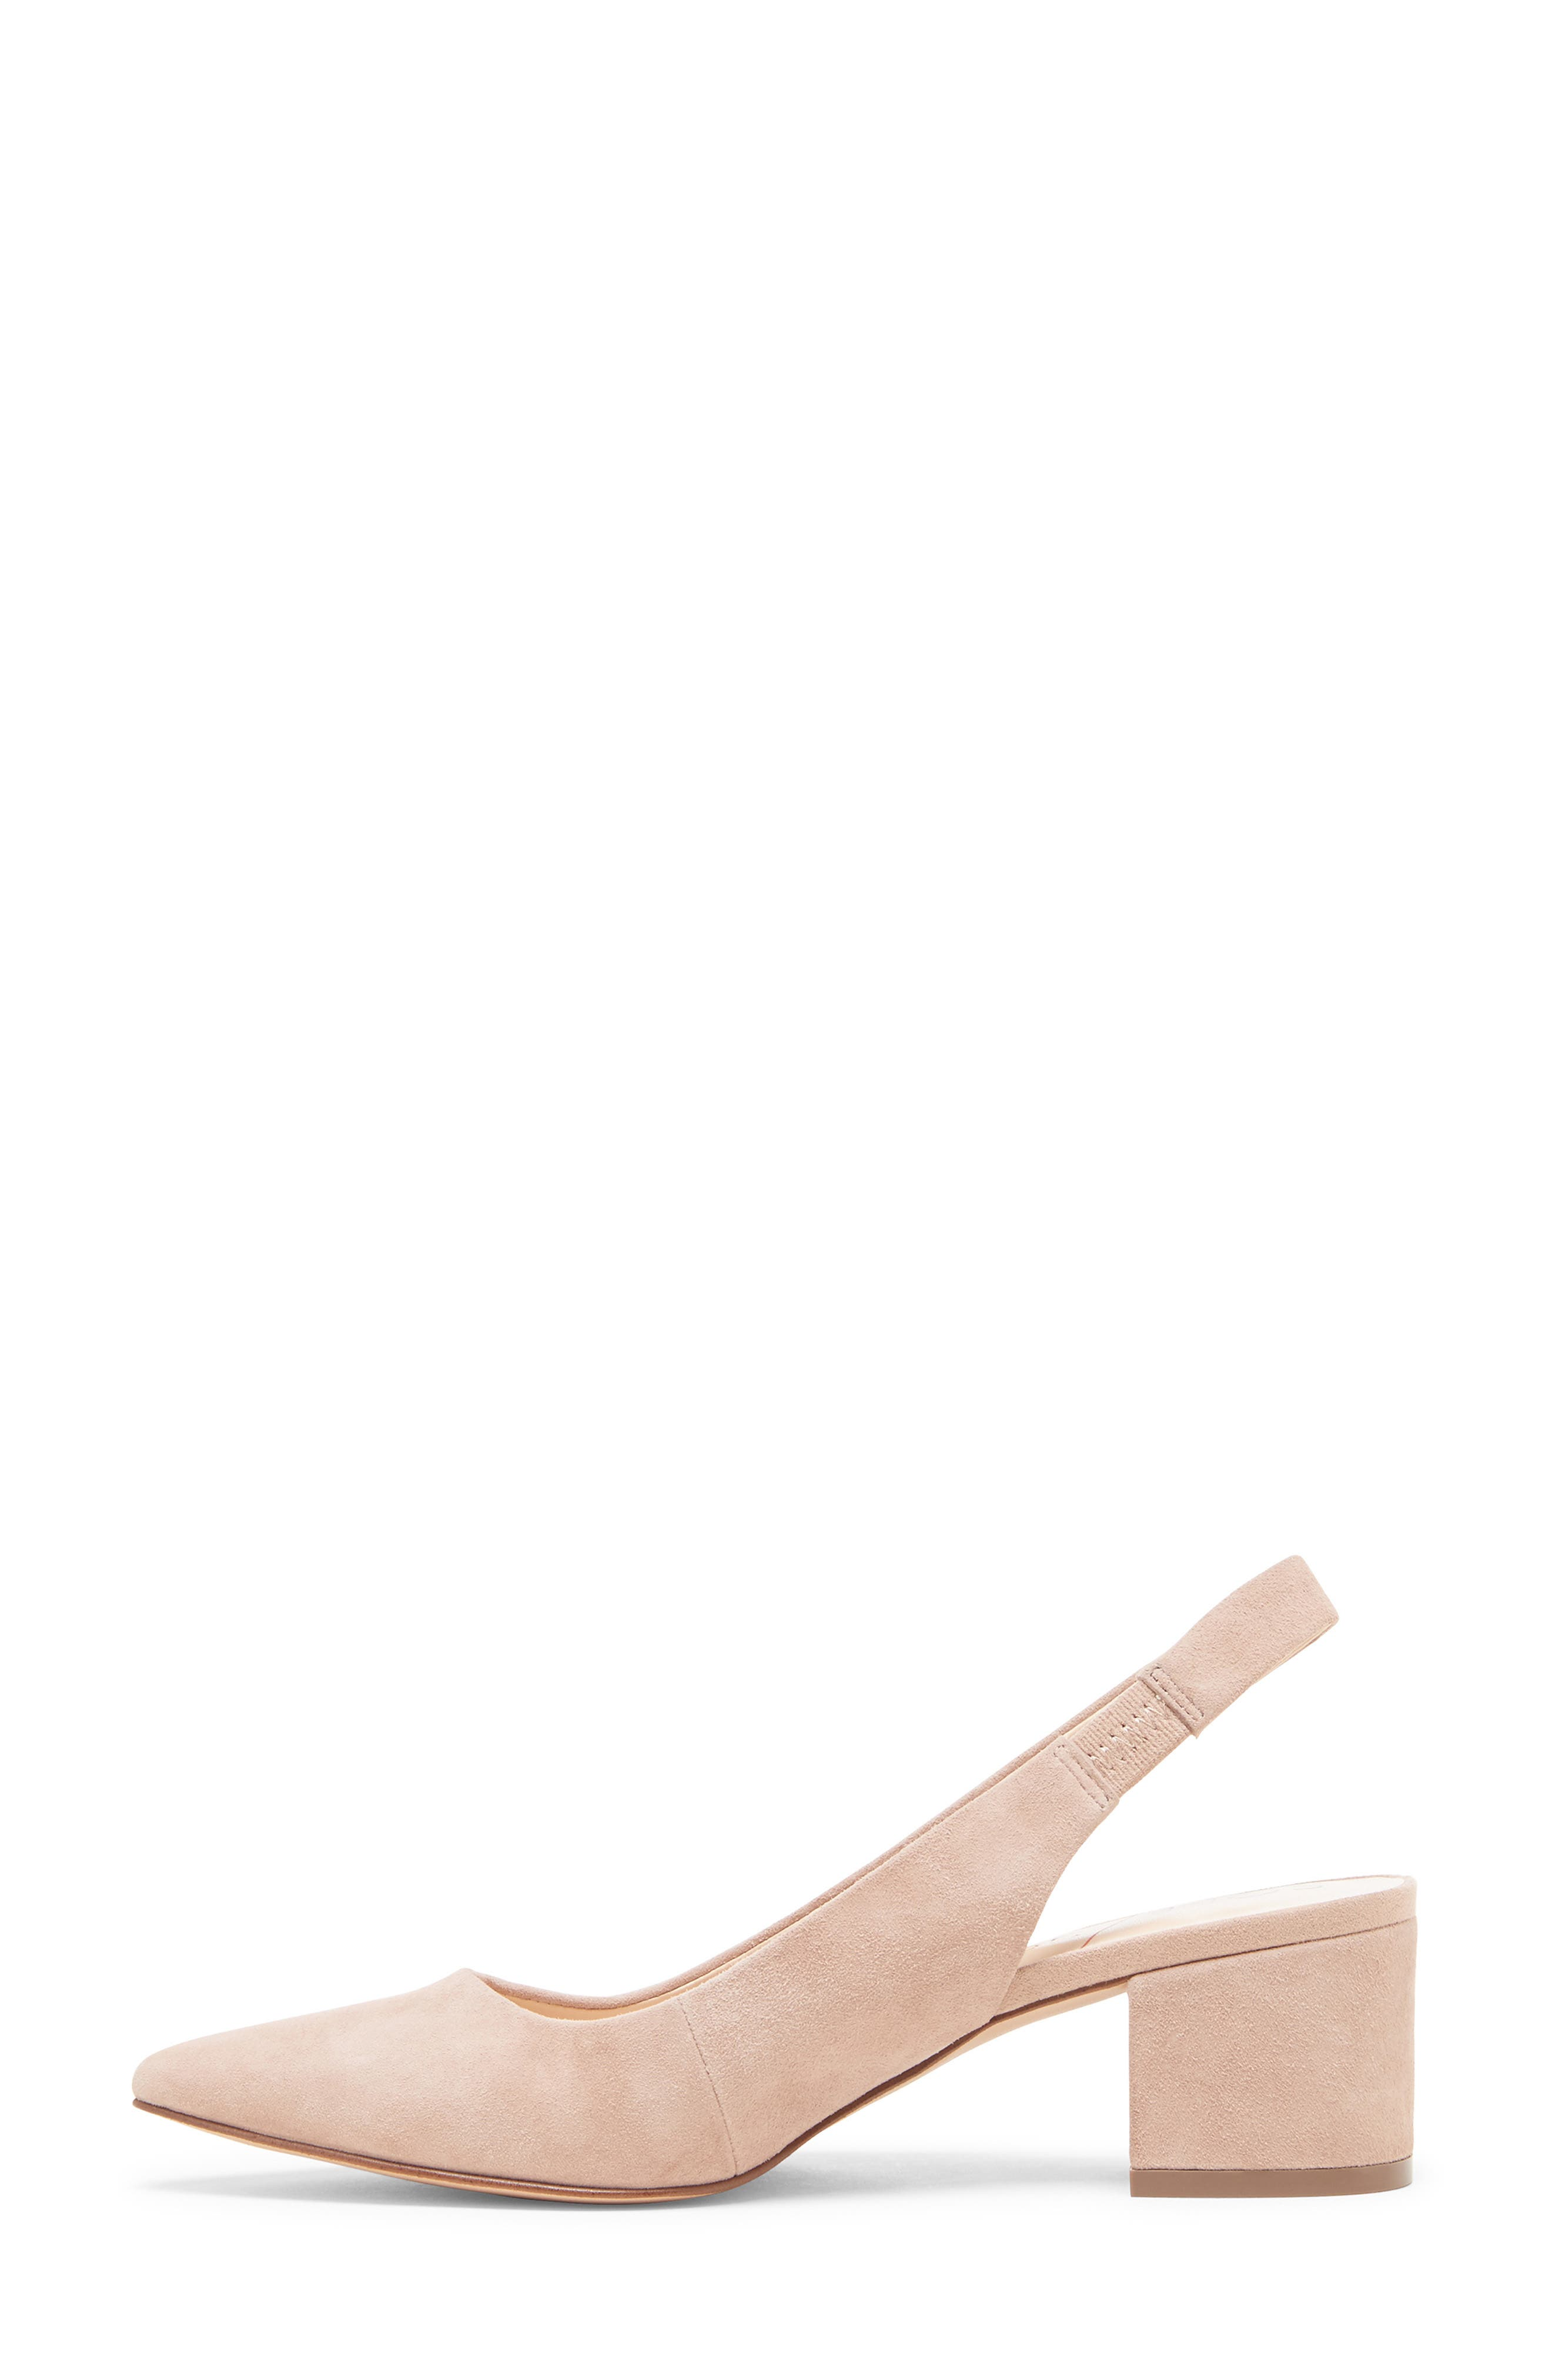 ,                             Keilinah Slingback Pointy Toe Pump,                             Alternate thumbnail 8, color,                             DUSTY ROSE SUEDE